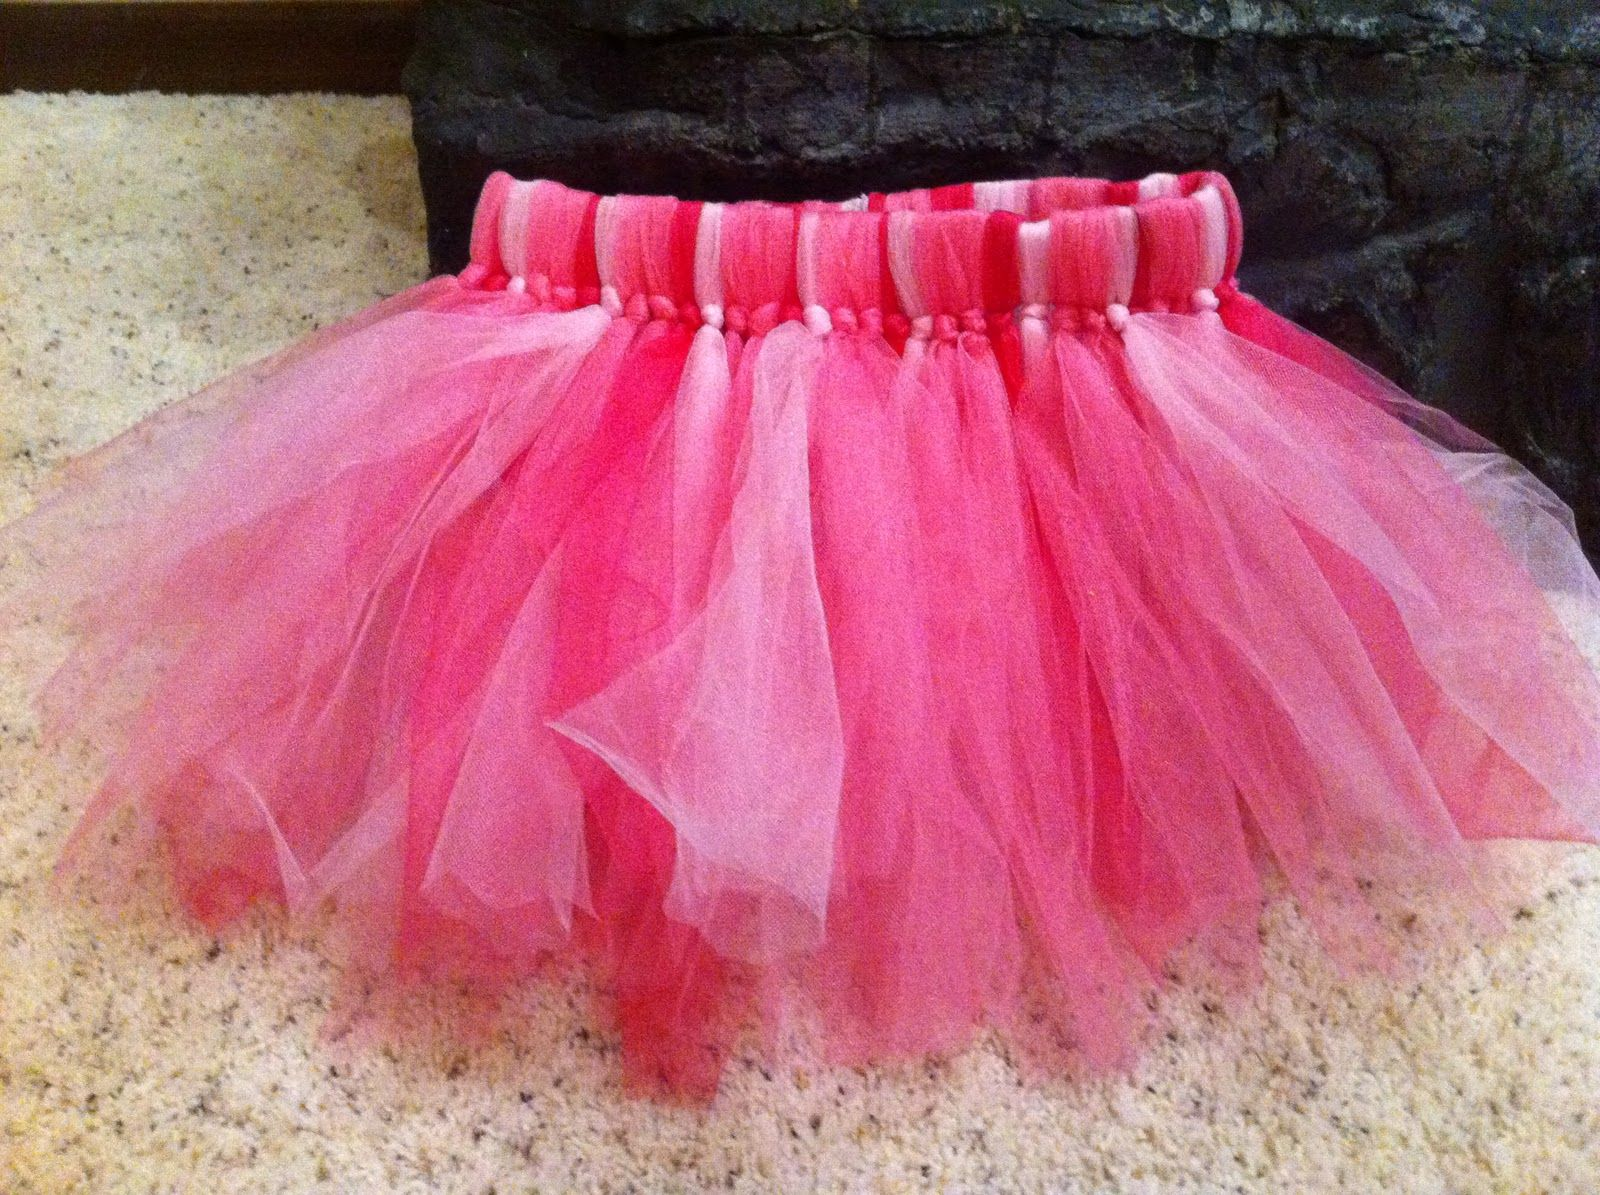 How To Make A Tulle Skirt I Like She Tied Knots On The Ends Secure Elastic